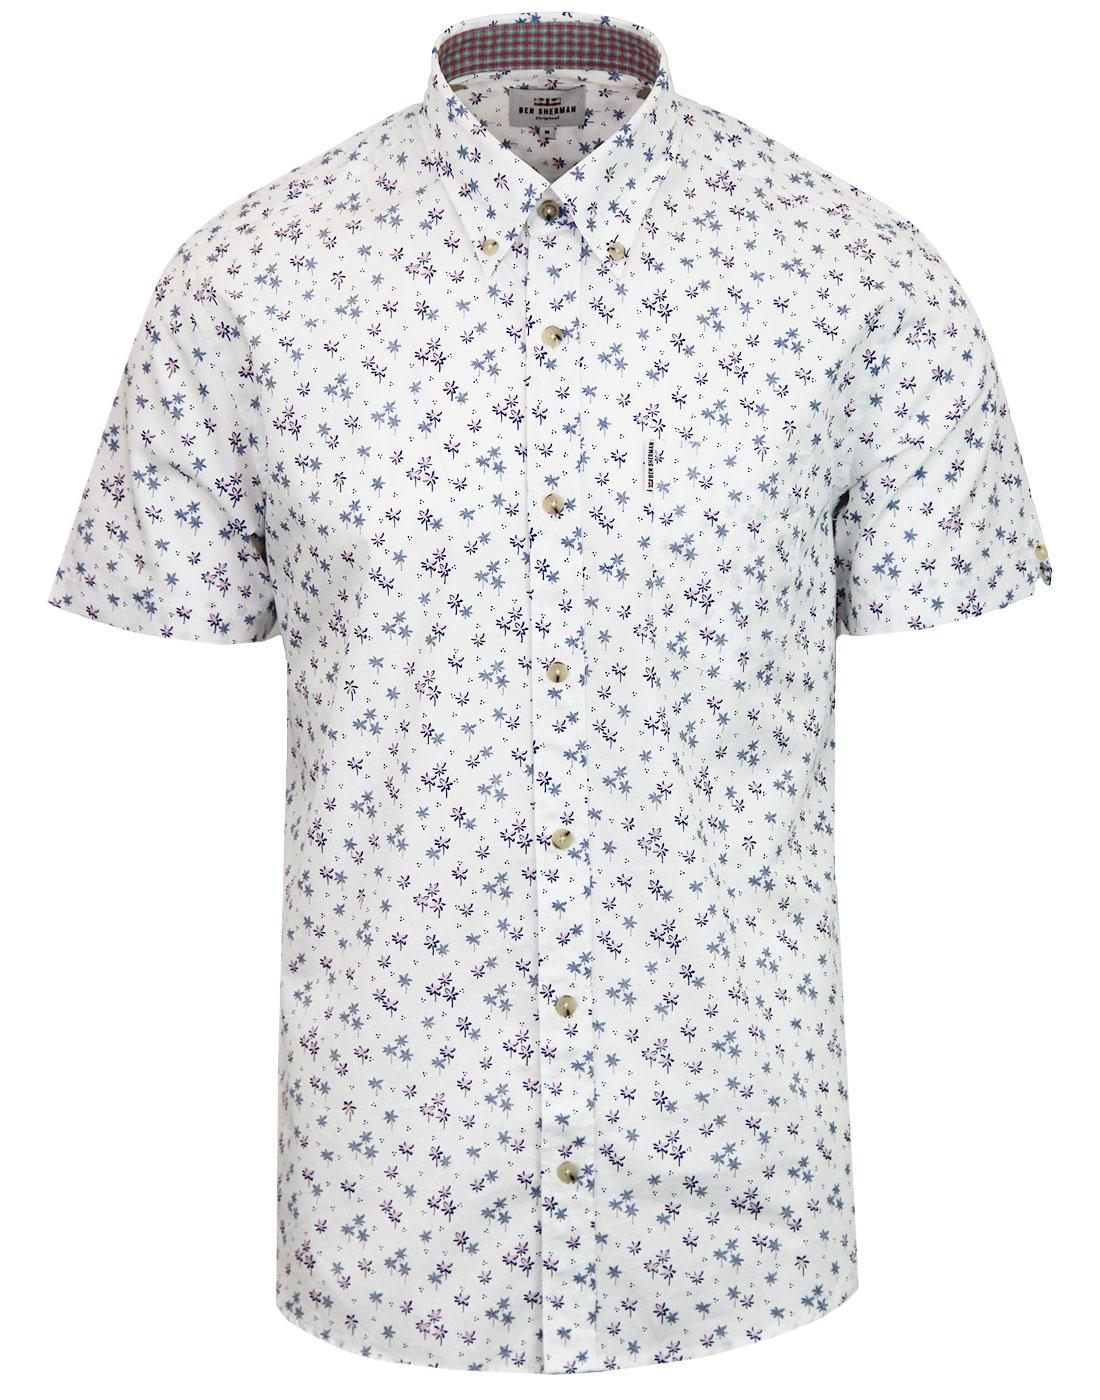 BEN SHERMAN Retro Mod Palm Tree Dot Shirt WHITE